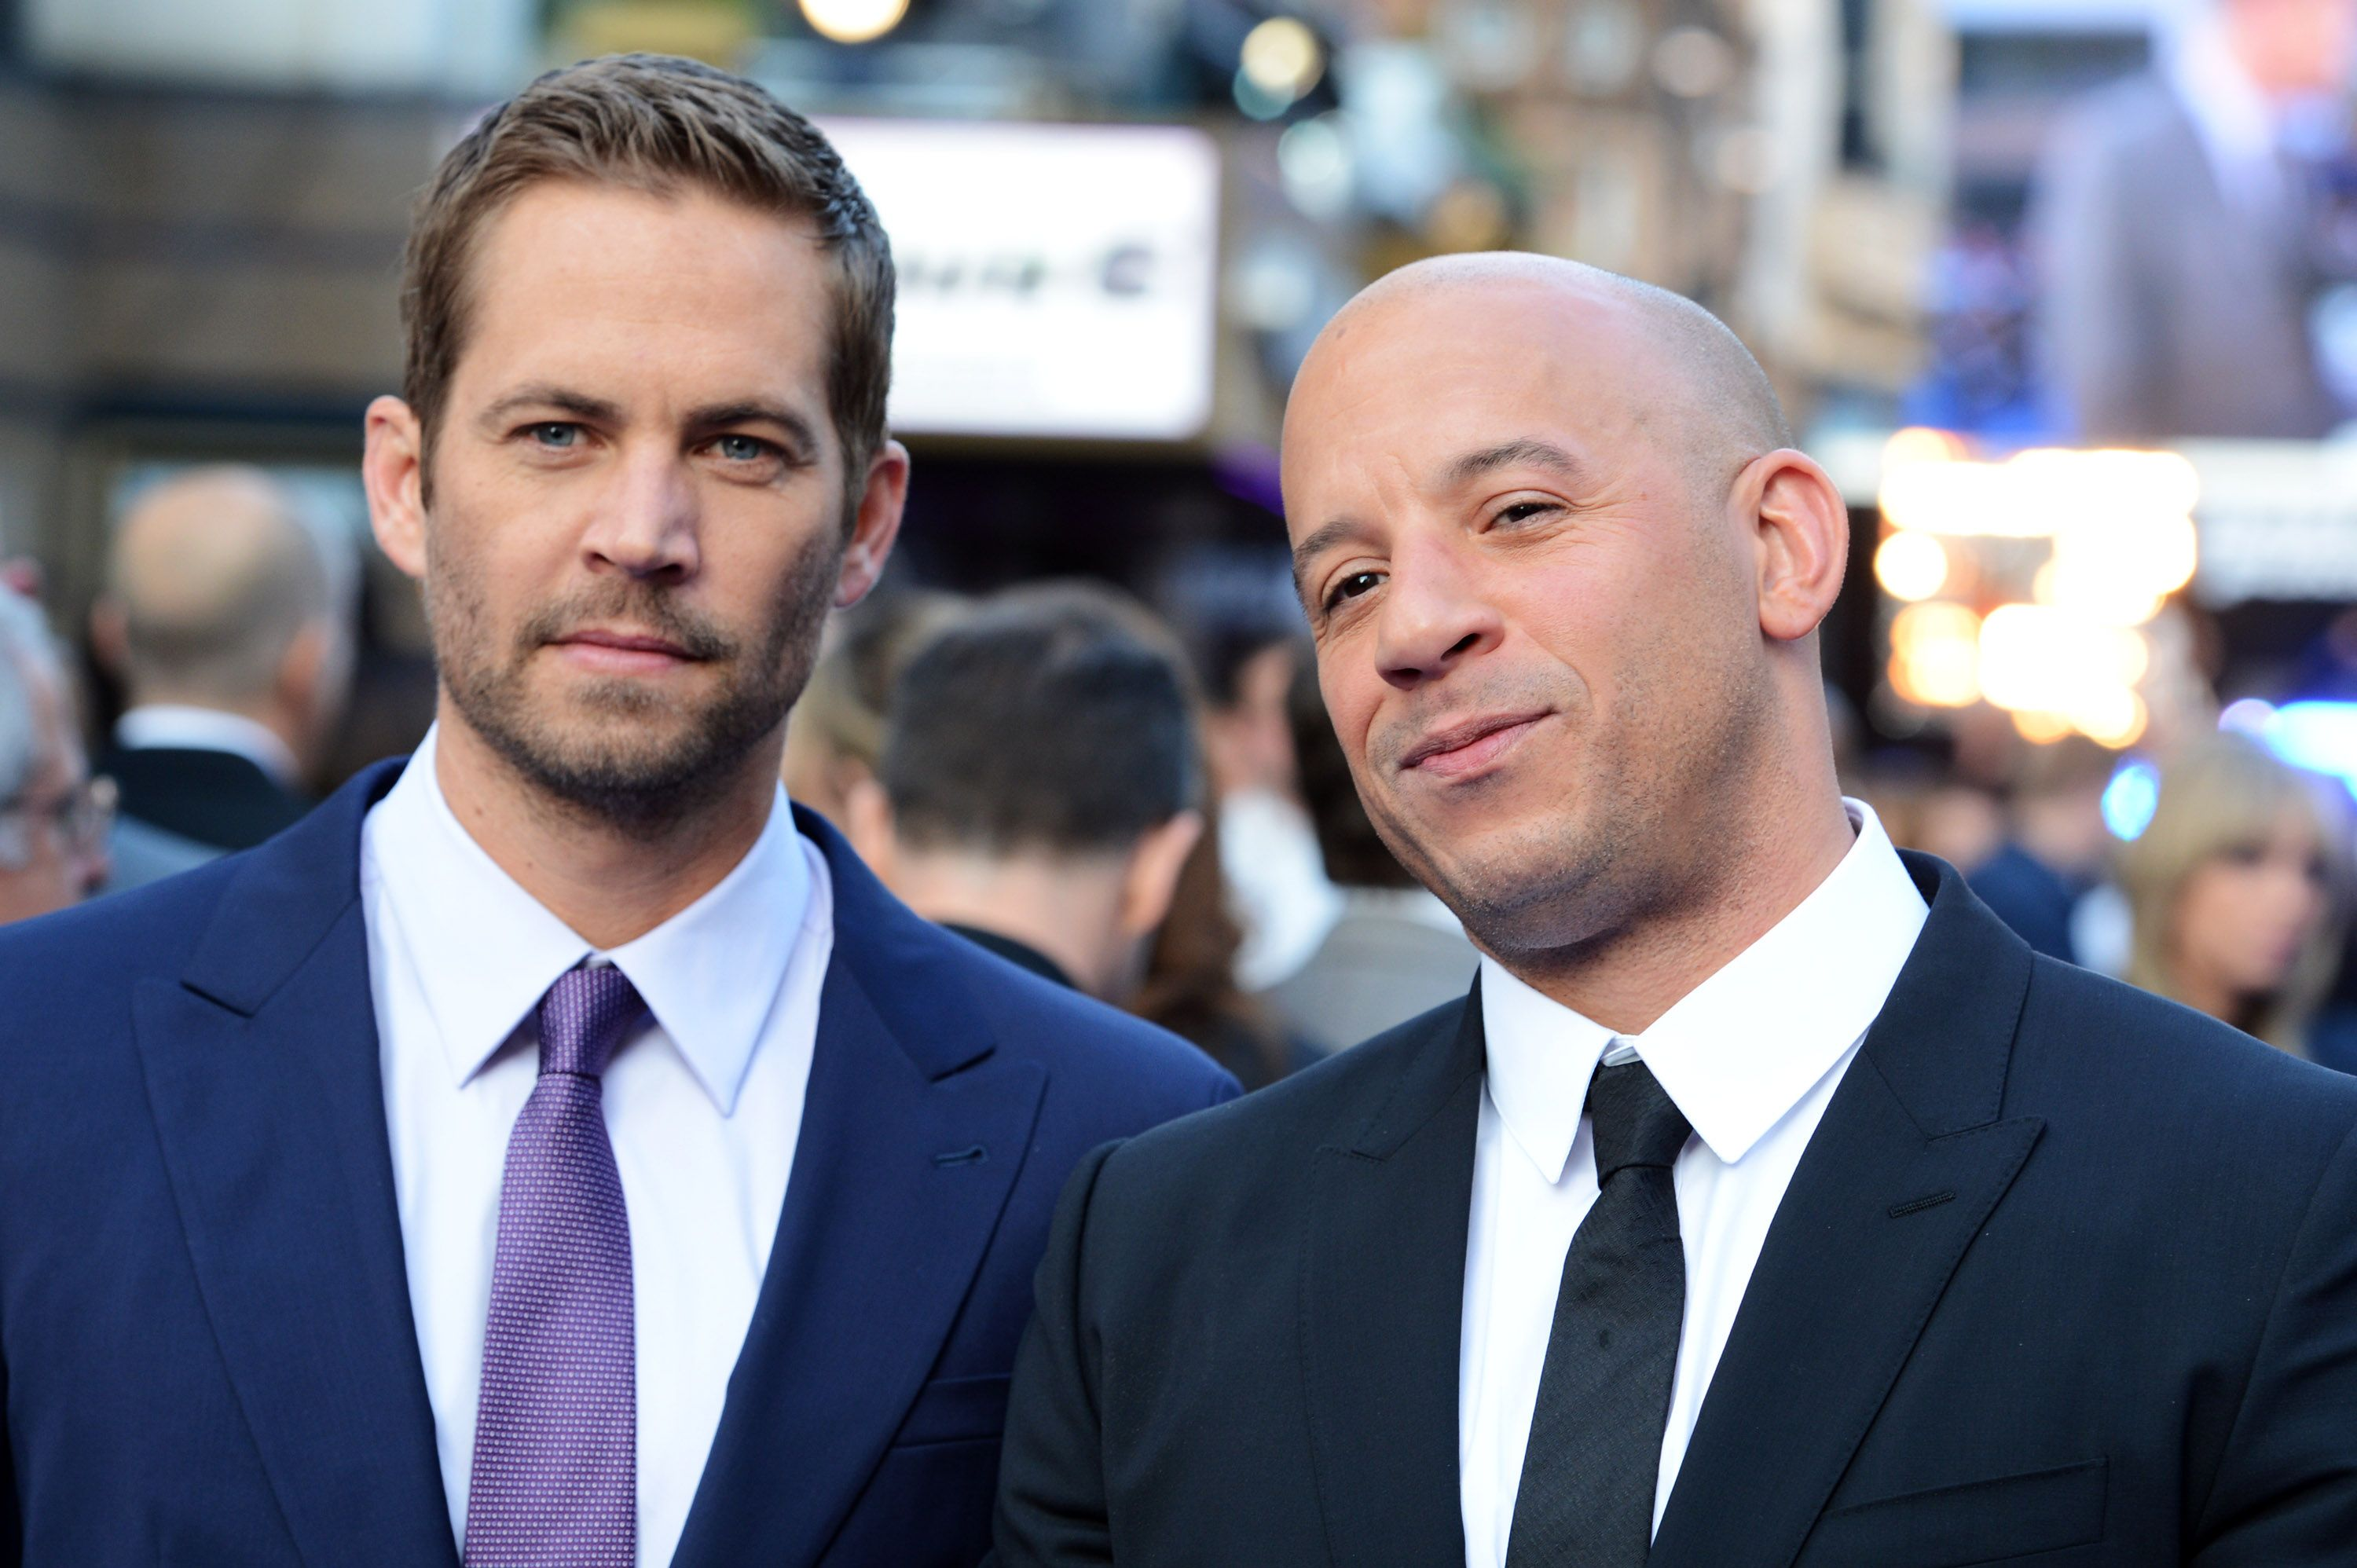 Paul Walker and Vin Diesel attend the World Premiere of 'Fast & Furious 6' / Getty Images